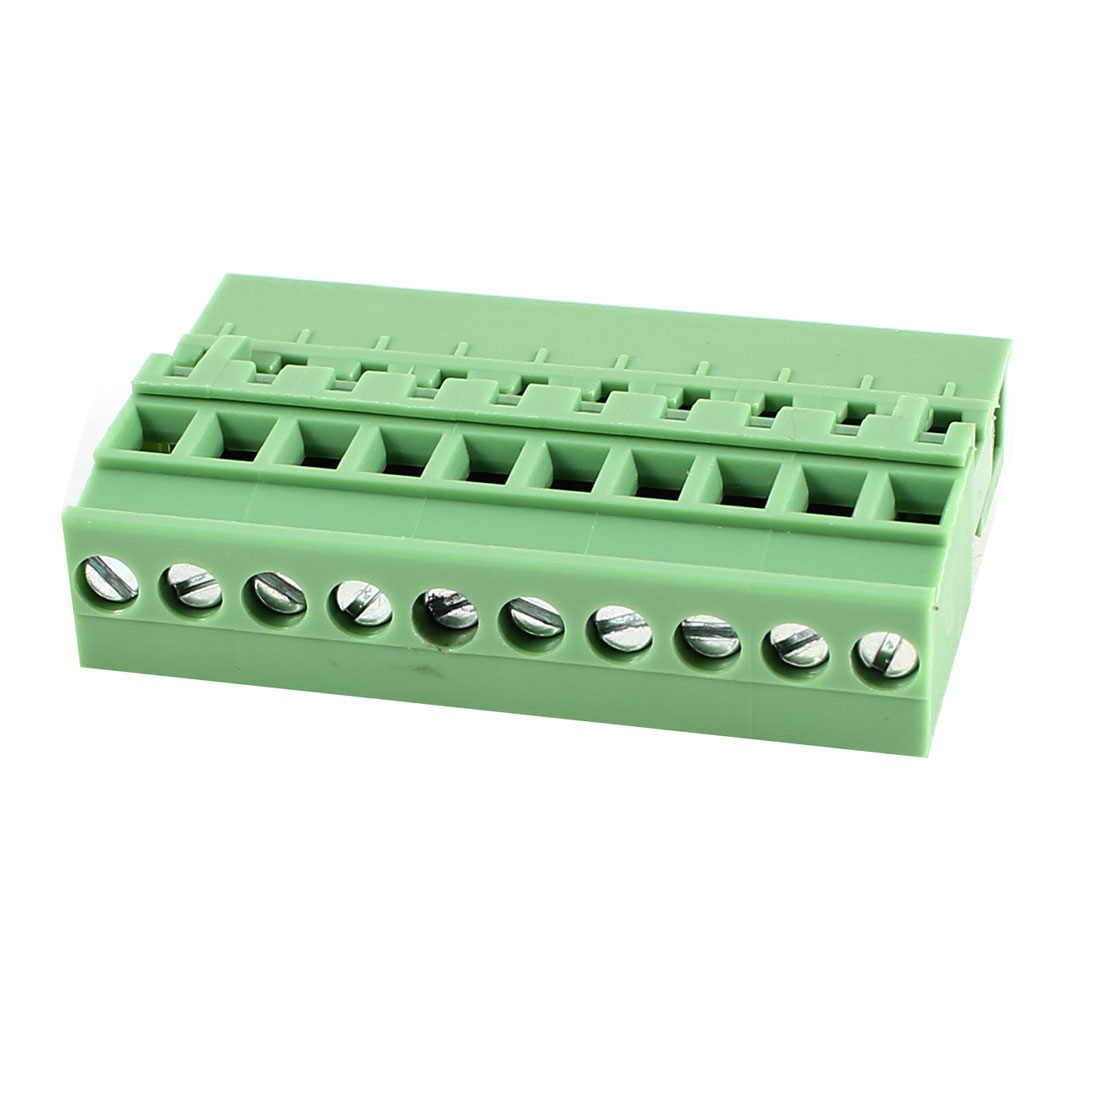 Green KF2EDGKA 5.08mm 9Position Screw Pluggable Terminal Block Connector 300V 10A